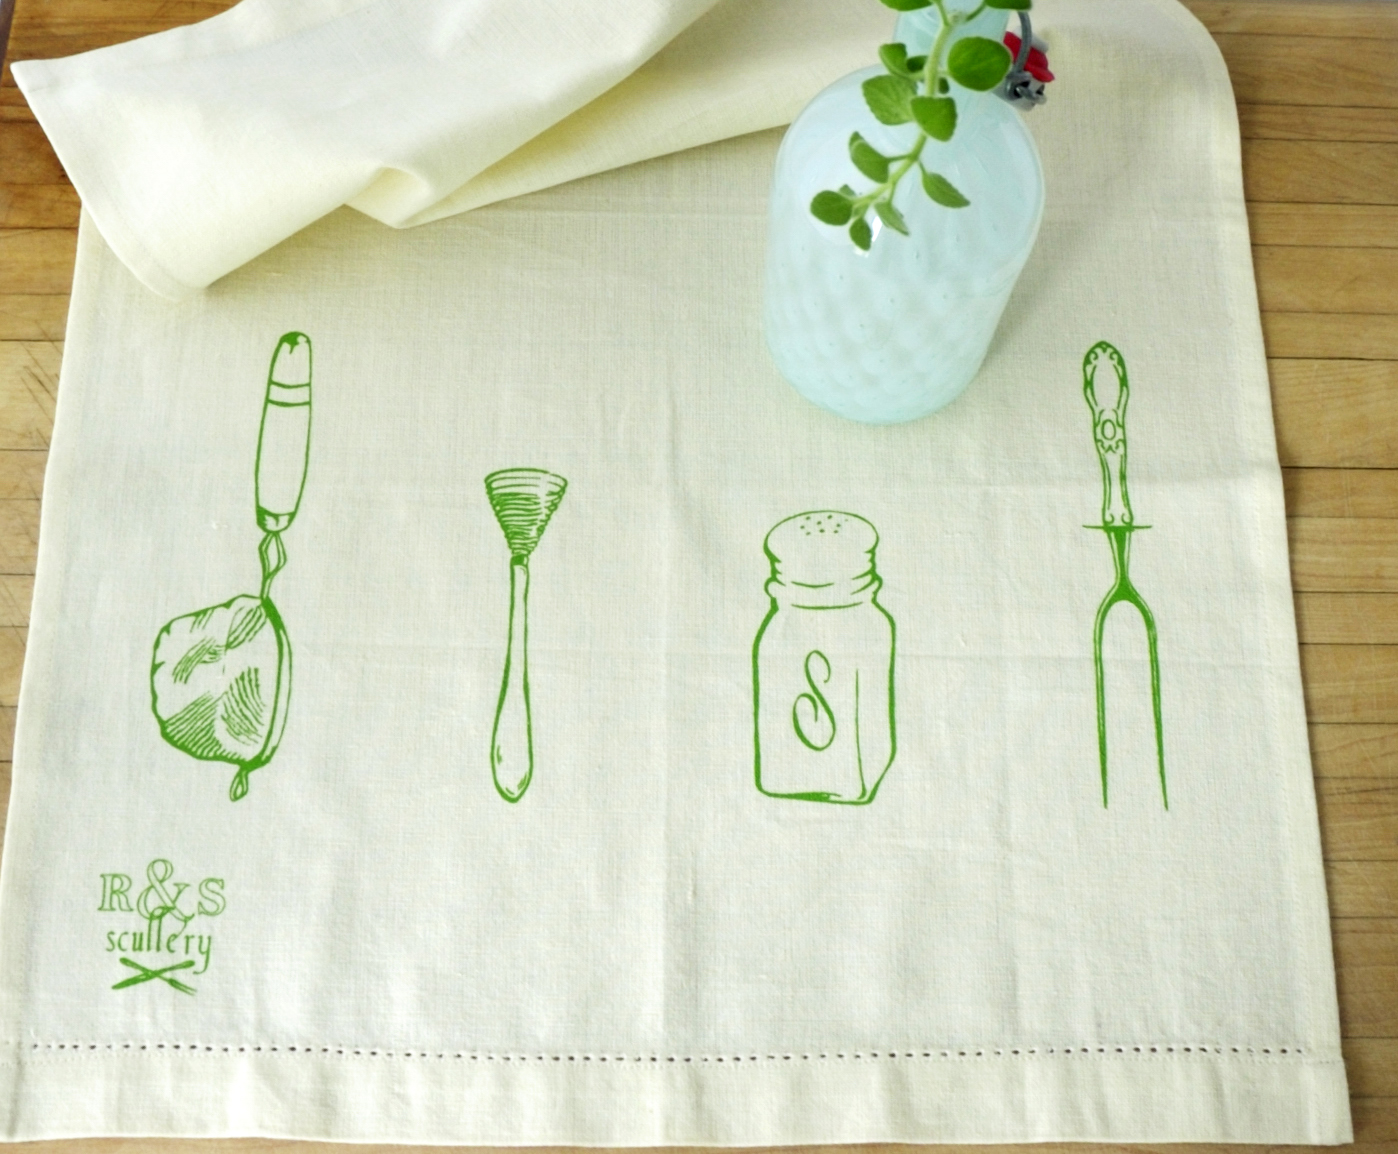 R&ampS Scullery Dish Towel